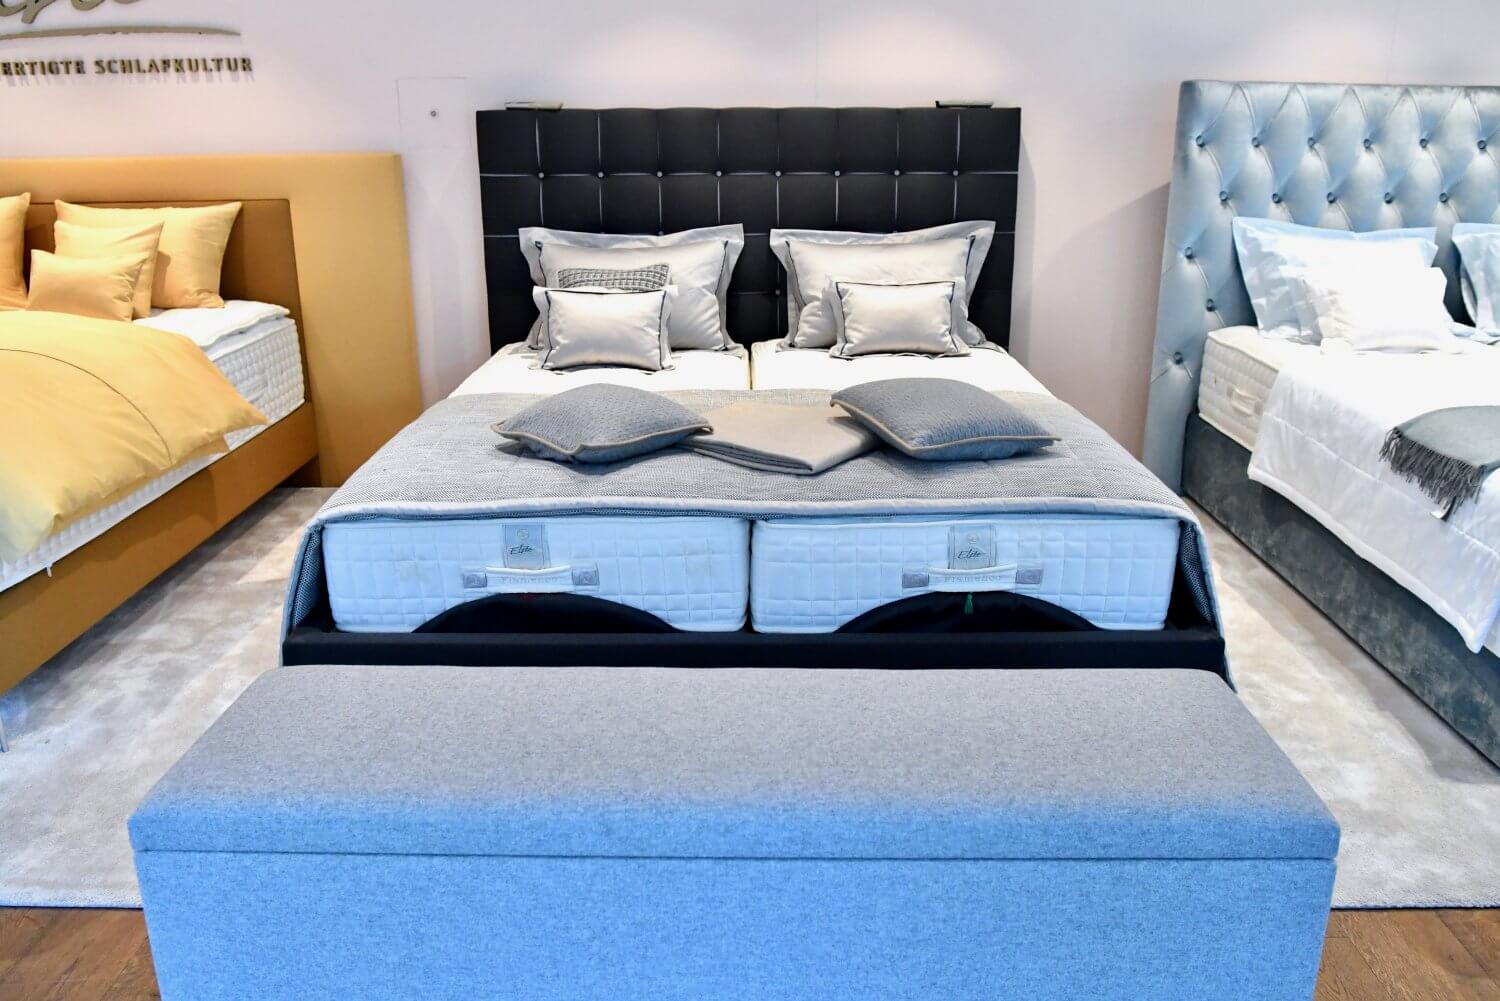 My Personal Super Easy Sleeping Tip and More - Elite Beds